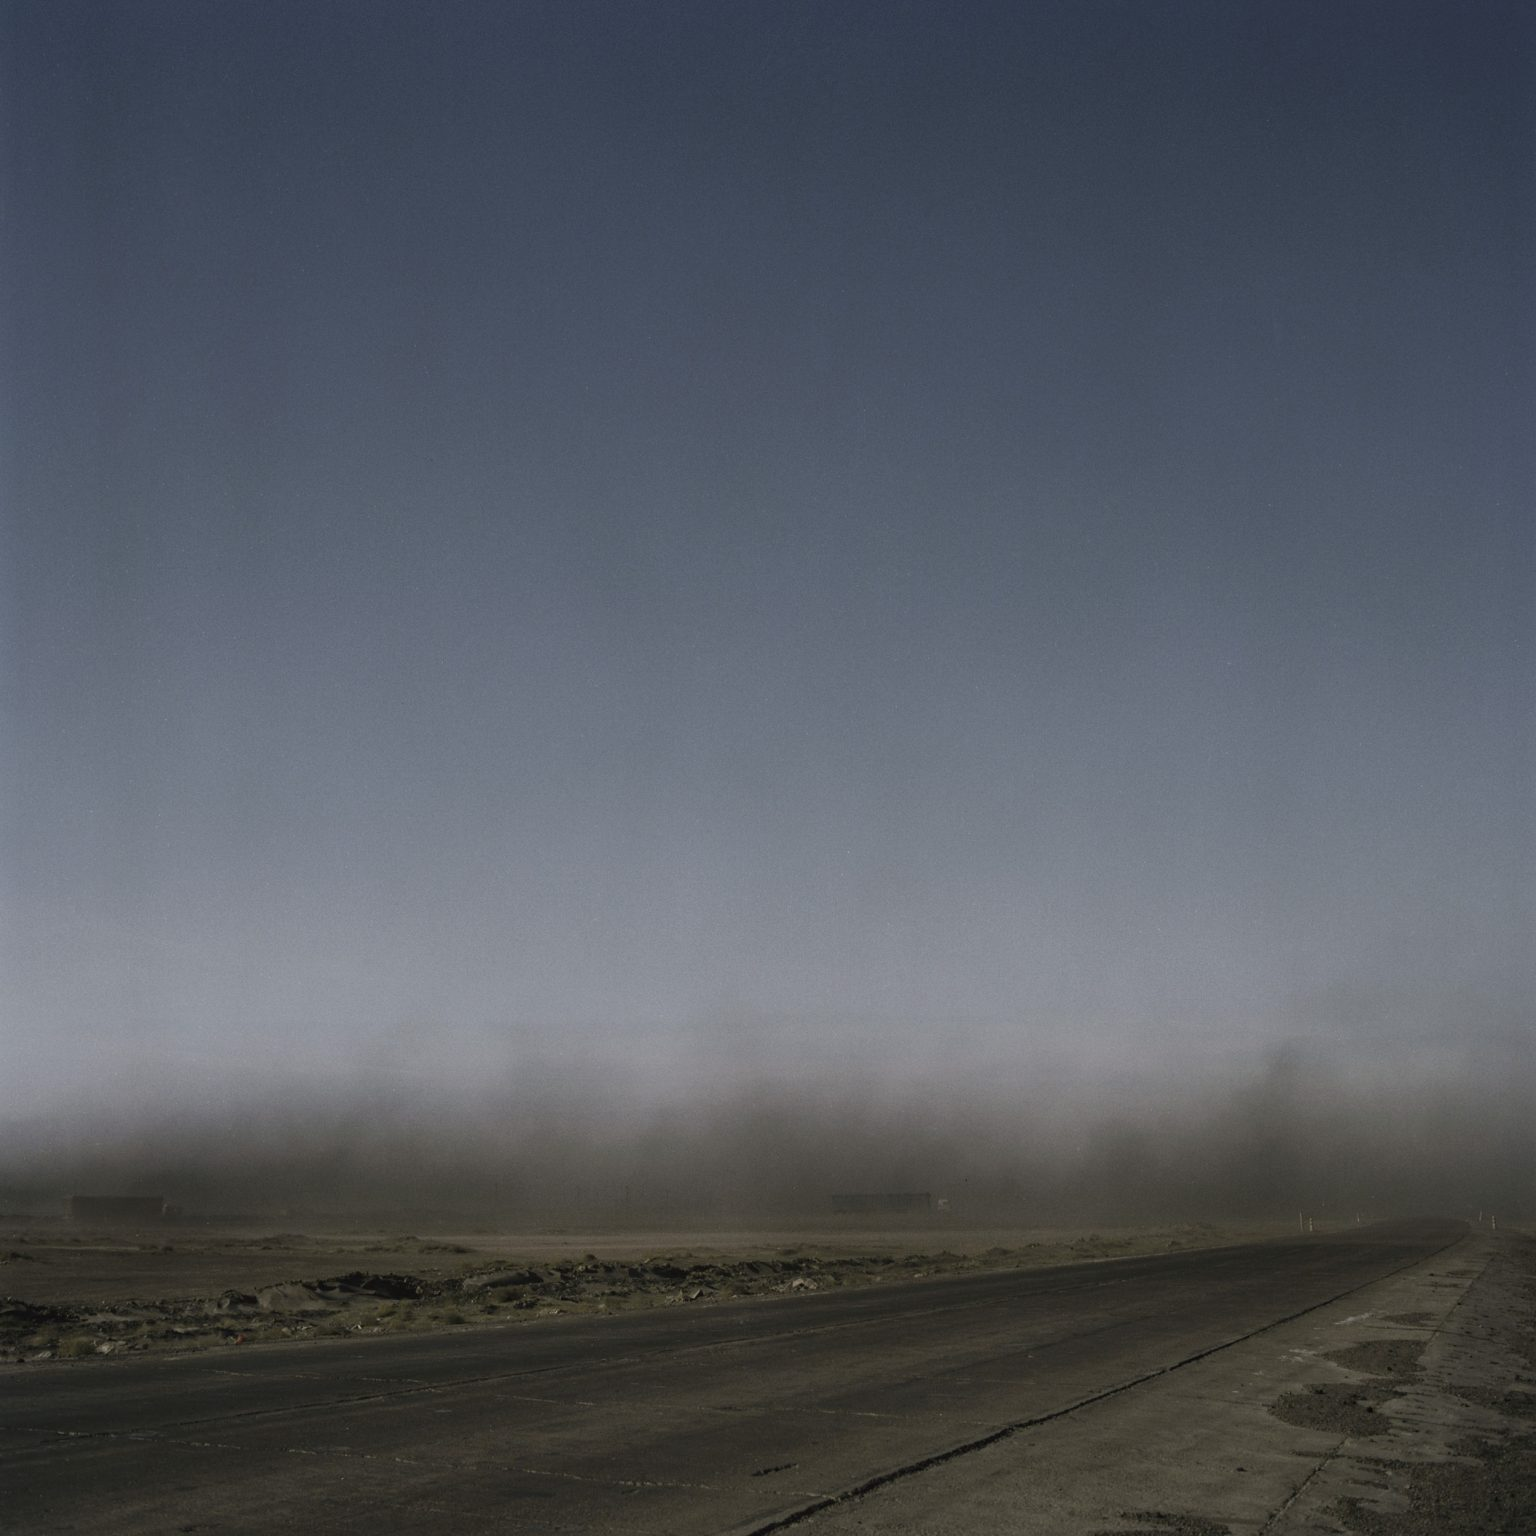 A cloud of coal dust in the road built by Energy Resource Mine to connect coal delivery from Mongolia to China. New roads interrupt wild animals and pasture's daily transit. Dust lifts as minetrucks pass through, and covers the surrounding vegetation, making it impossible for the cattle to feed themselves. White Mountains outpost, 2013